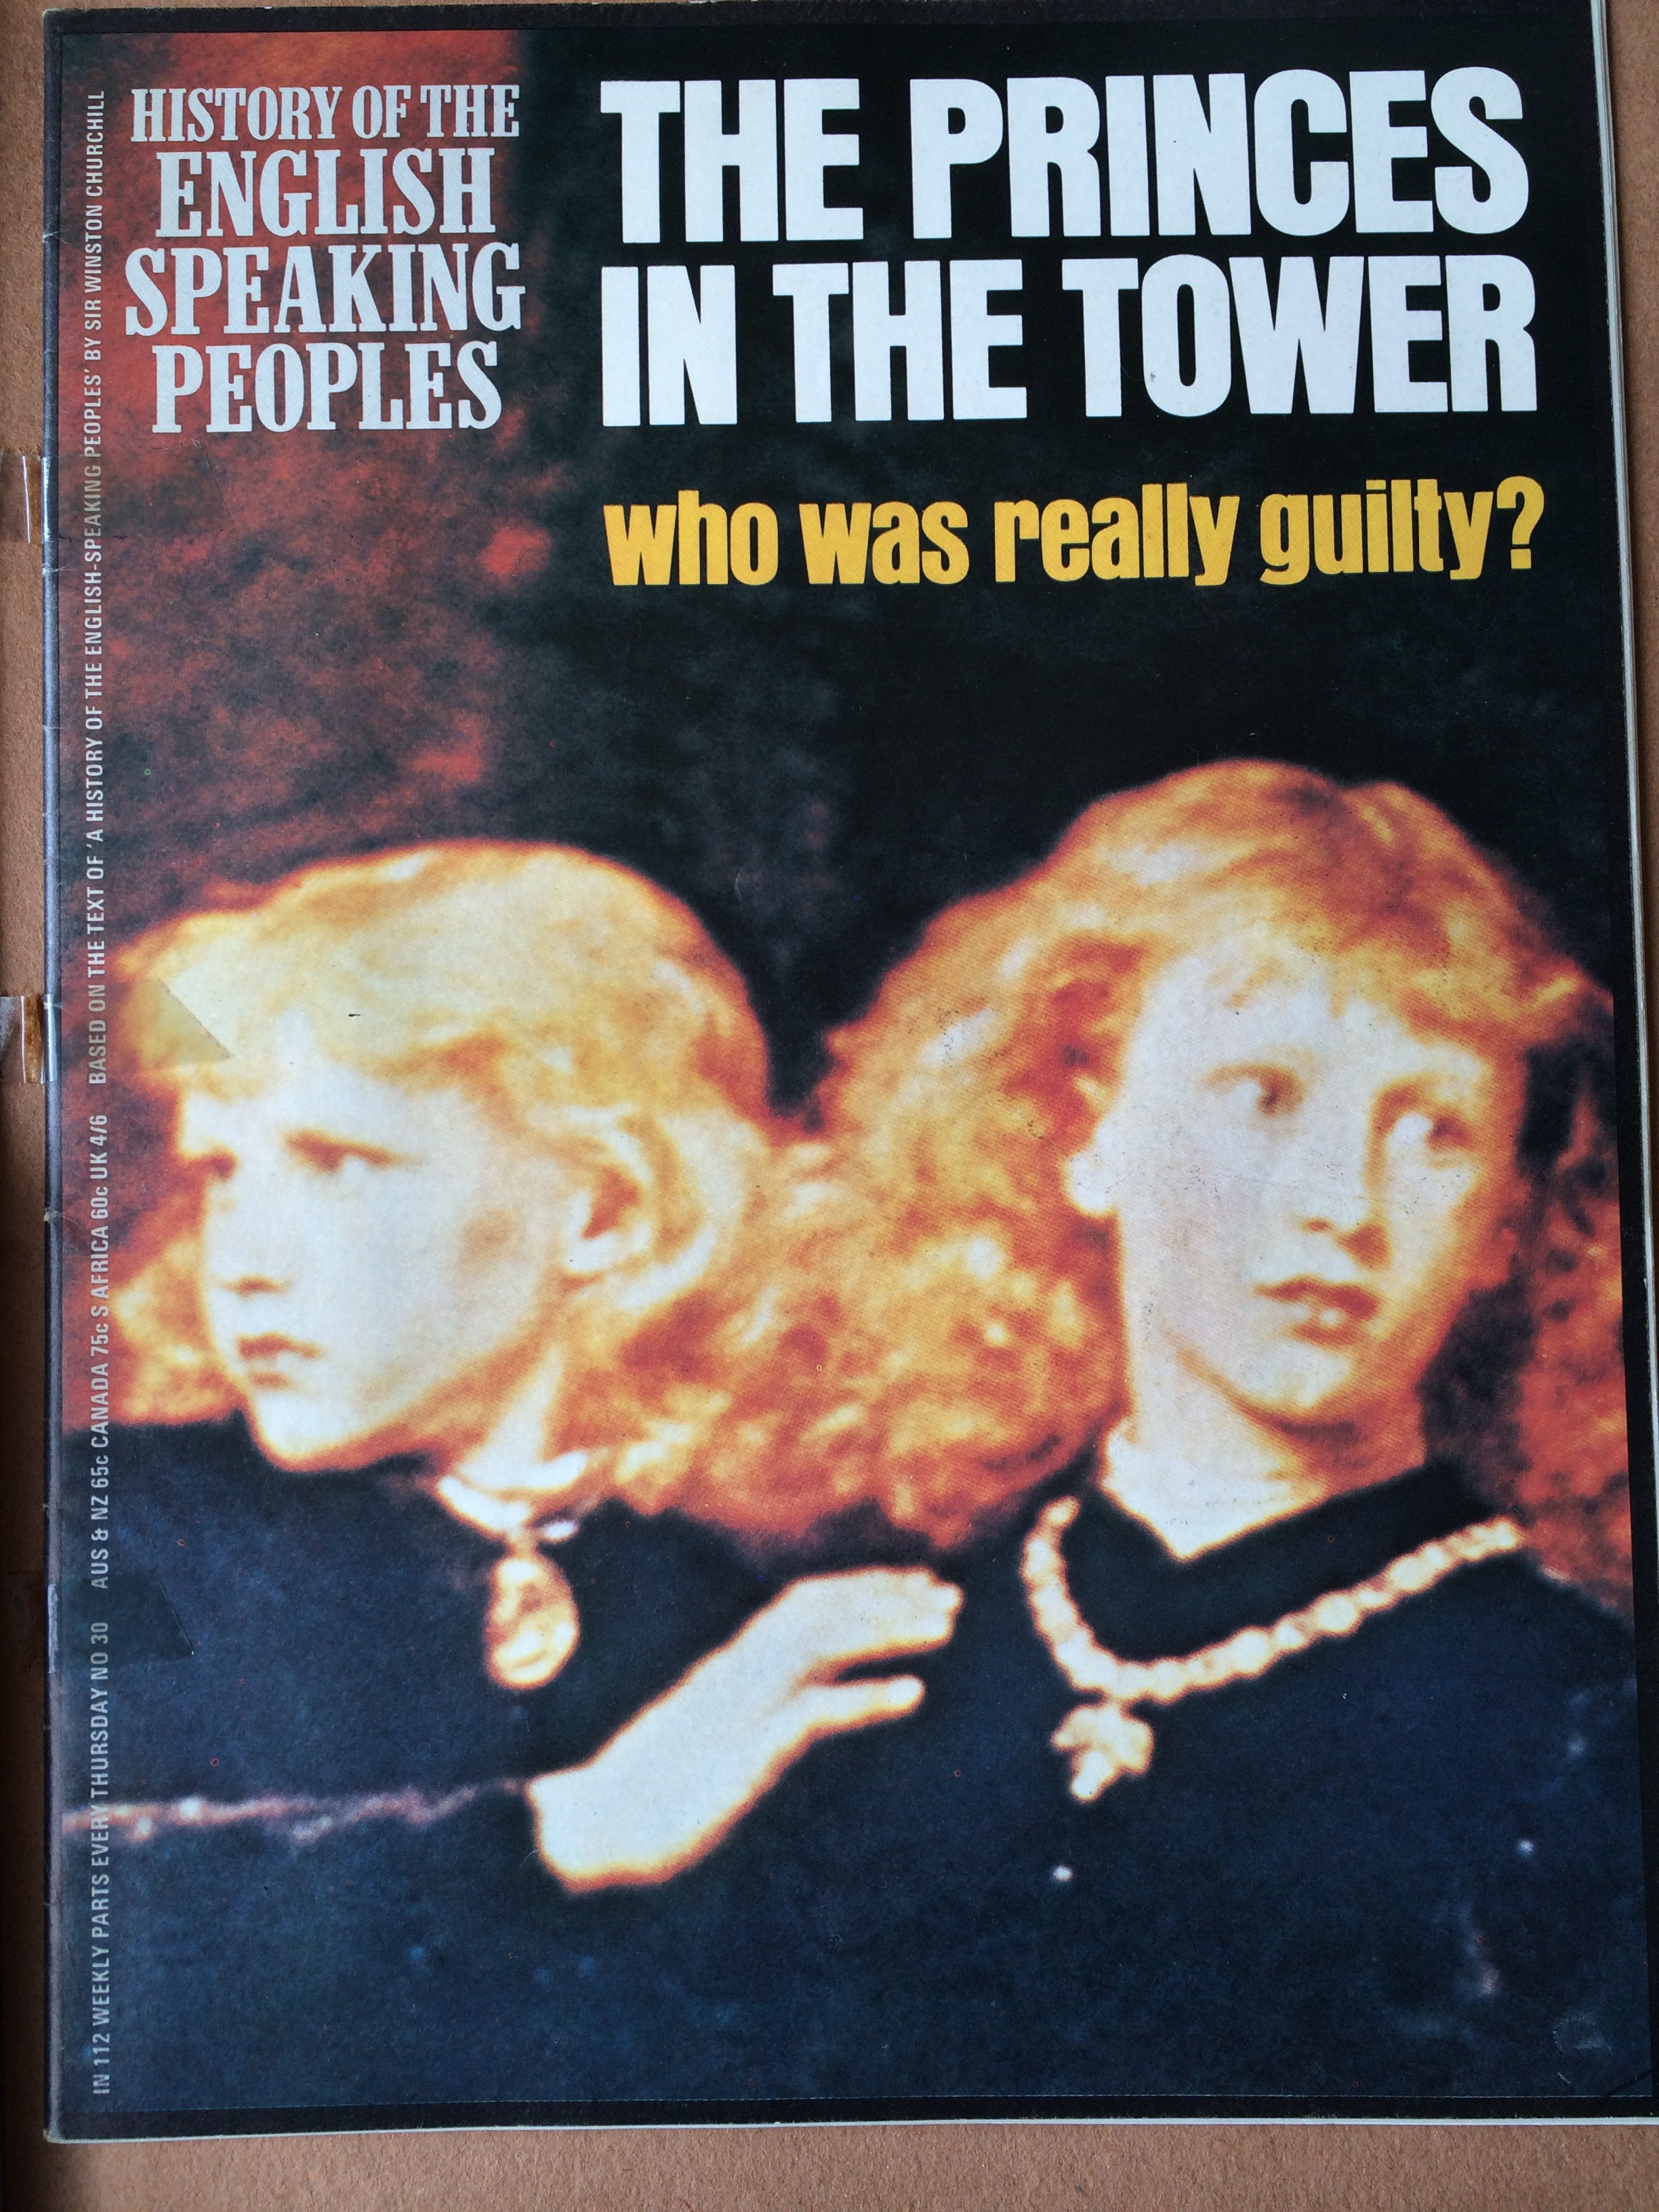 """who killed the princes in the tower essay """"the princes in the tower"""" includes the following essays:  who want to clear  richard iii's name, the theory that henry vii killed the princes."""